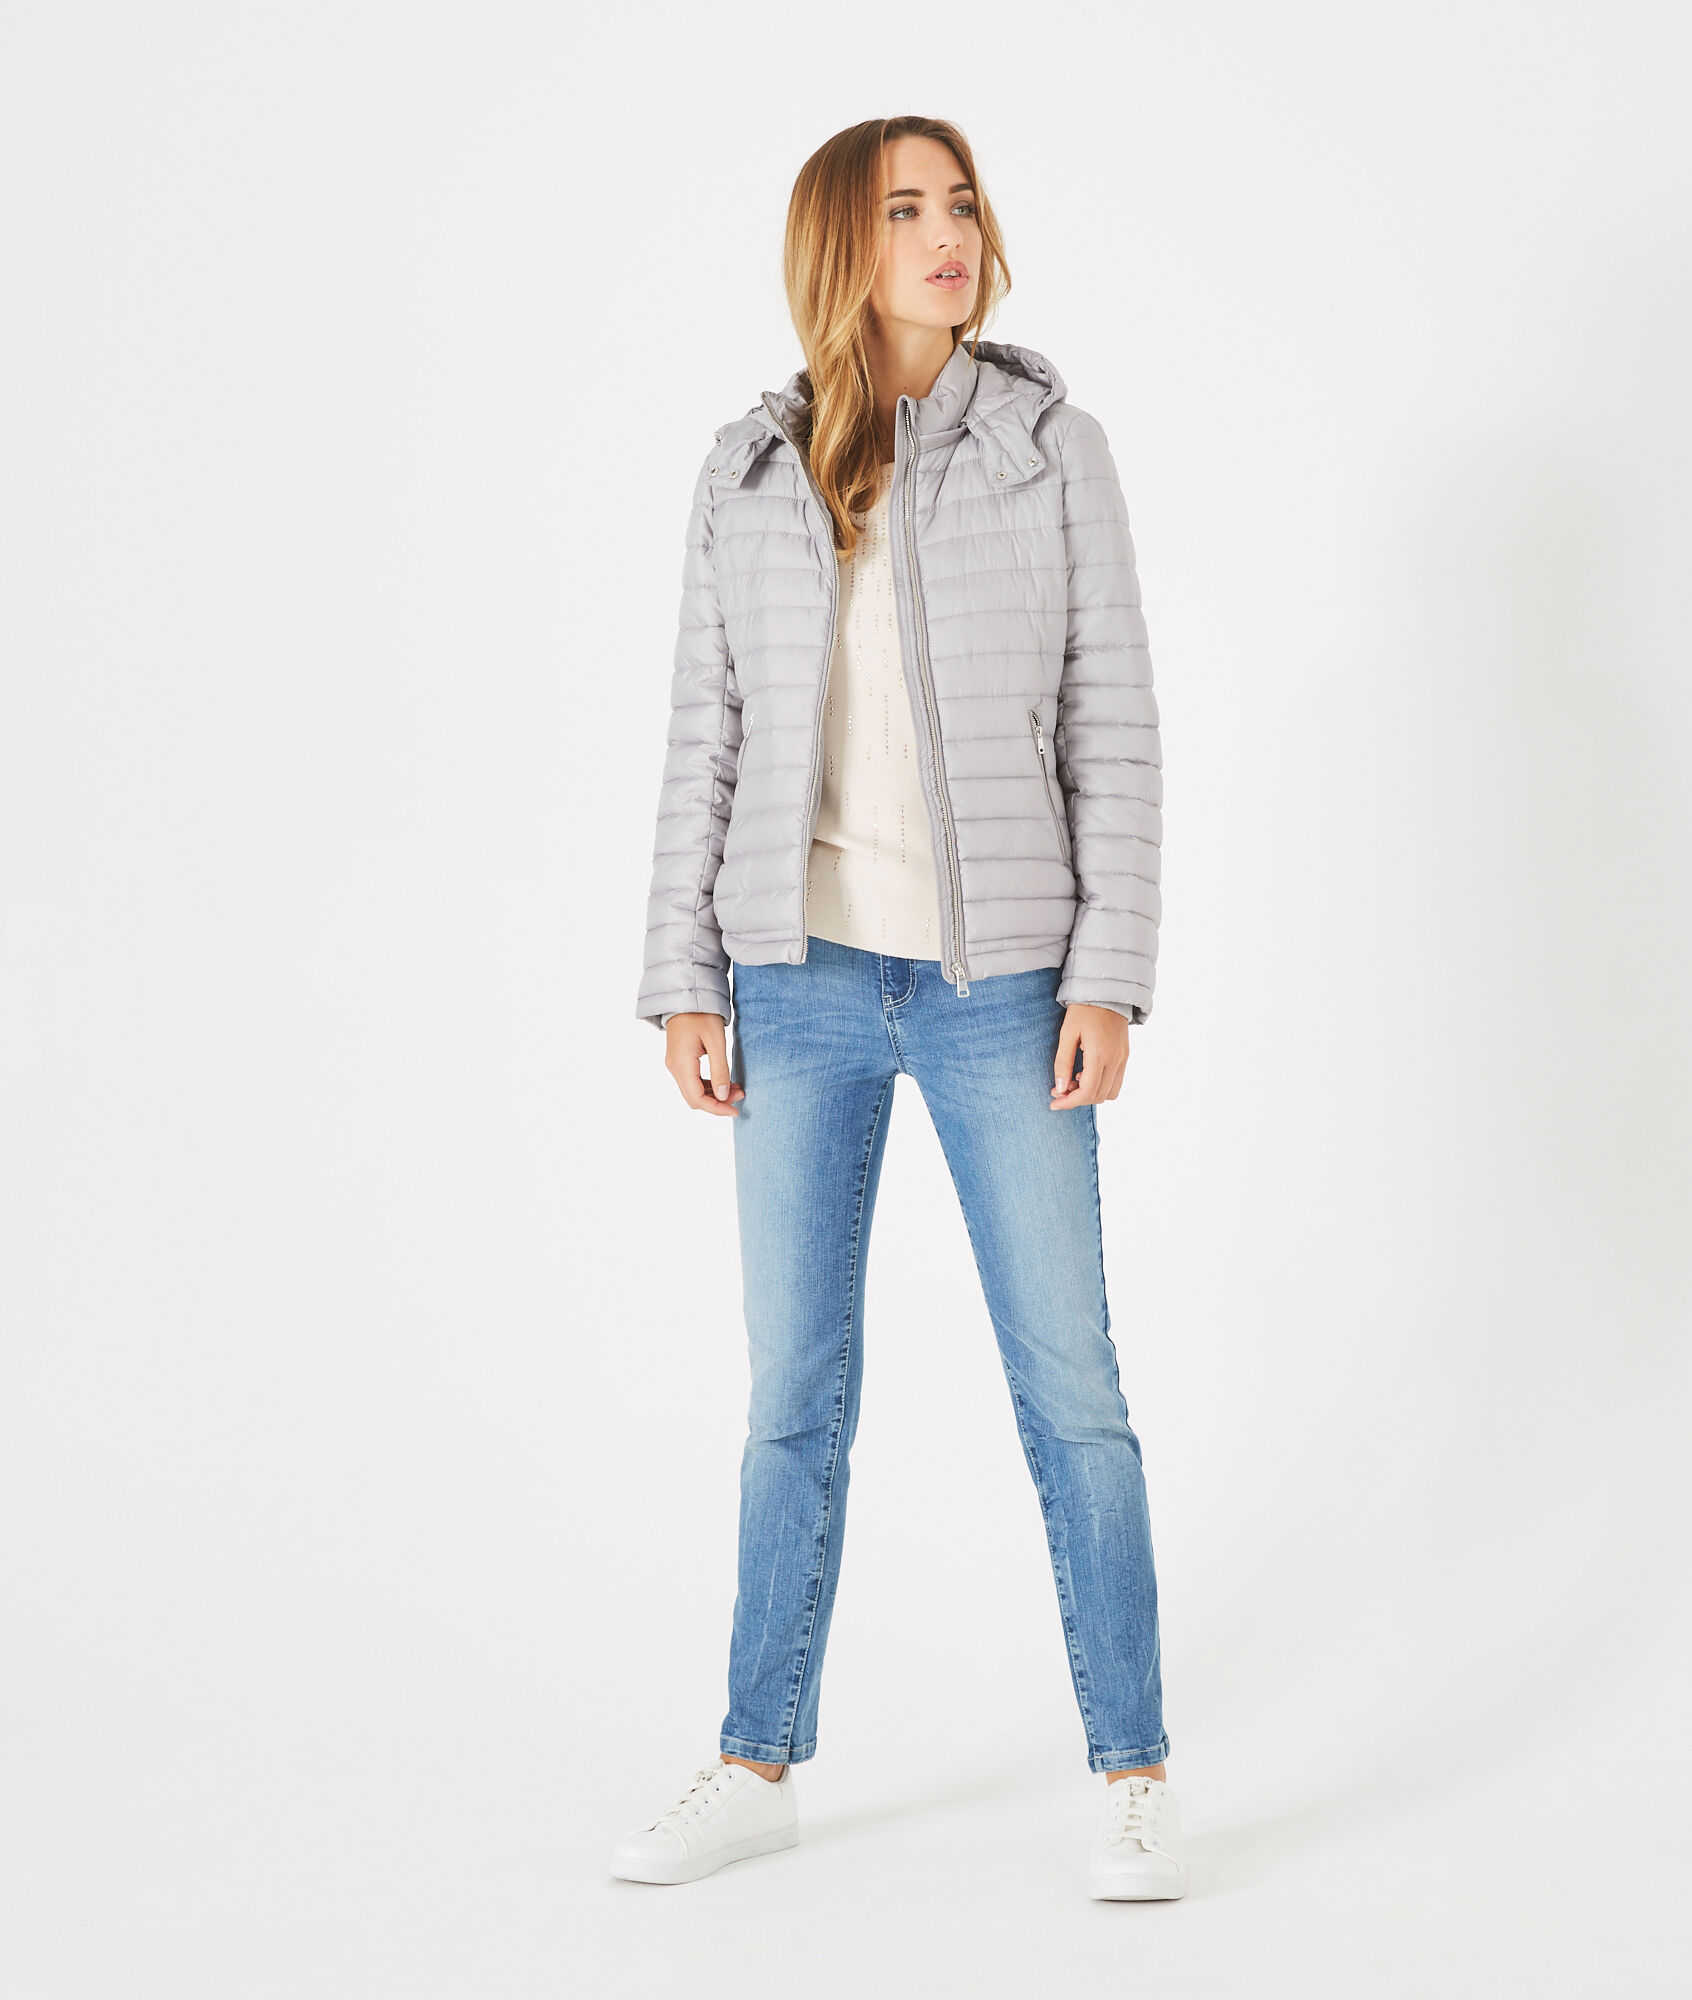 Louise short quilted jacket in silver with a rounded collar - 123